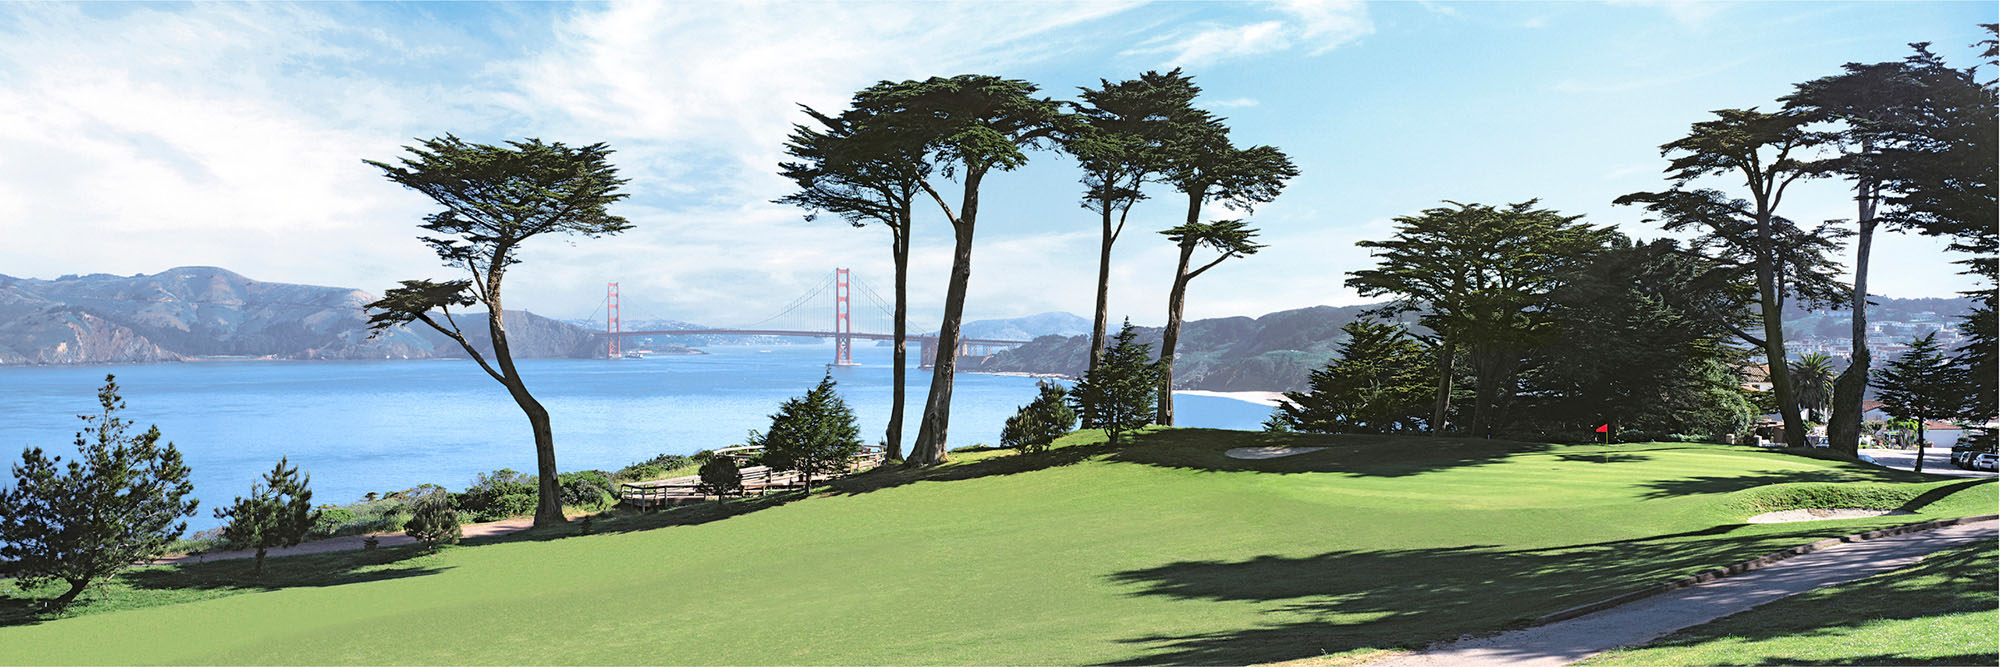 Golf Course Image - Lincoln Park No. 17